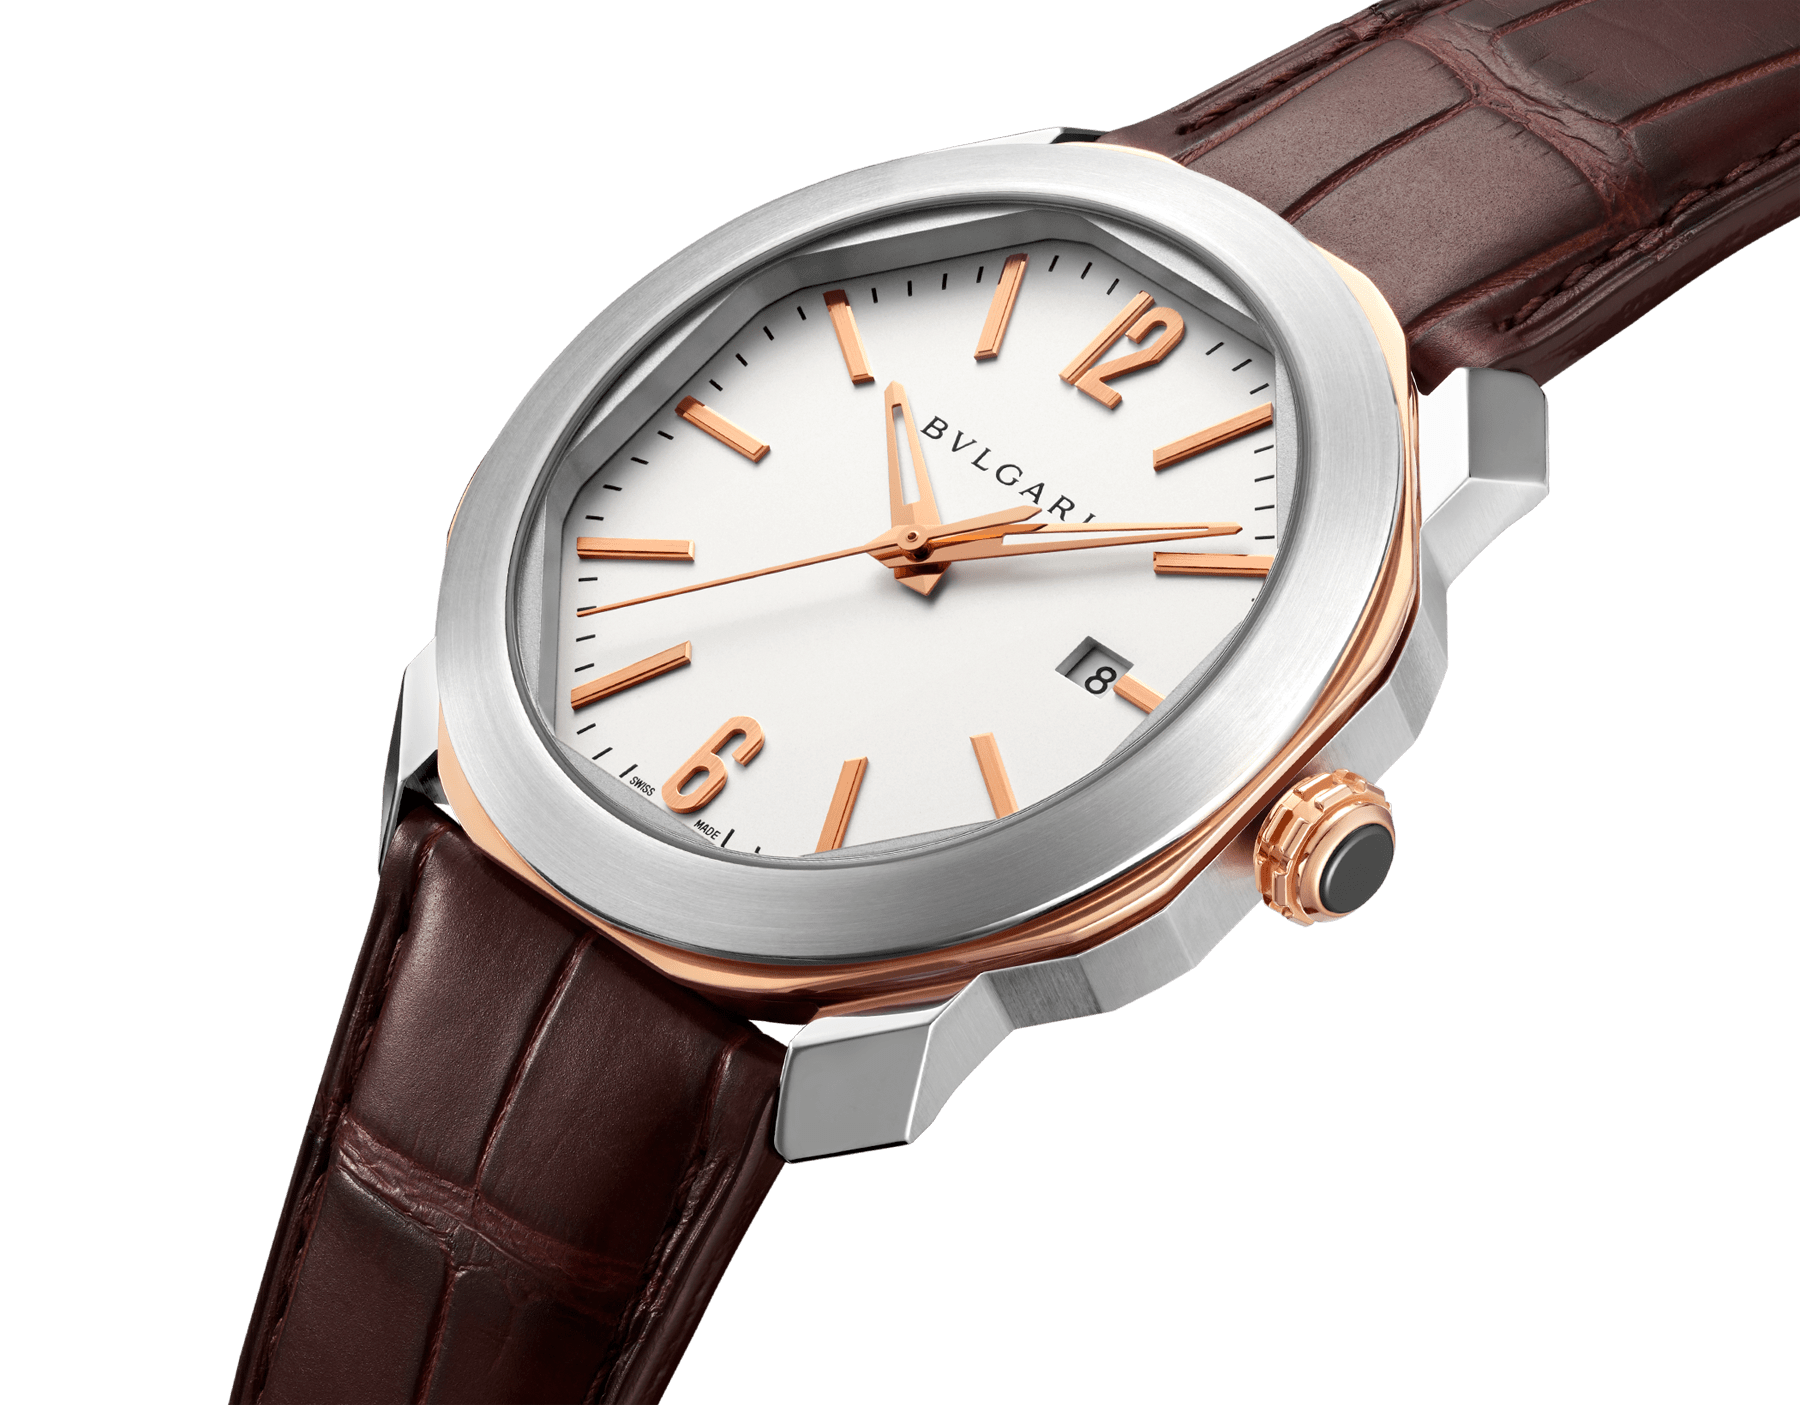 Octo Roma watch with mechanical manufacture movement, automatic winding, case in stainless steel and 18 kt rose gold, silver dial and brown alligator bracelet. 102703 image 2